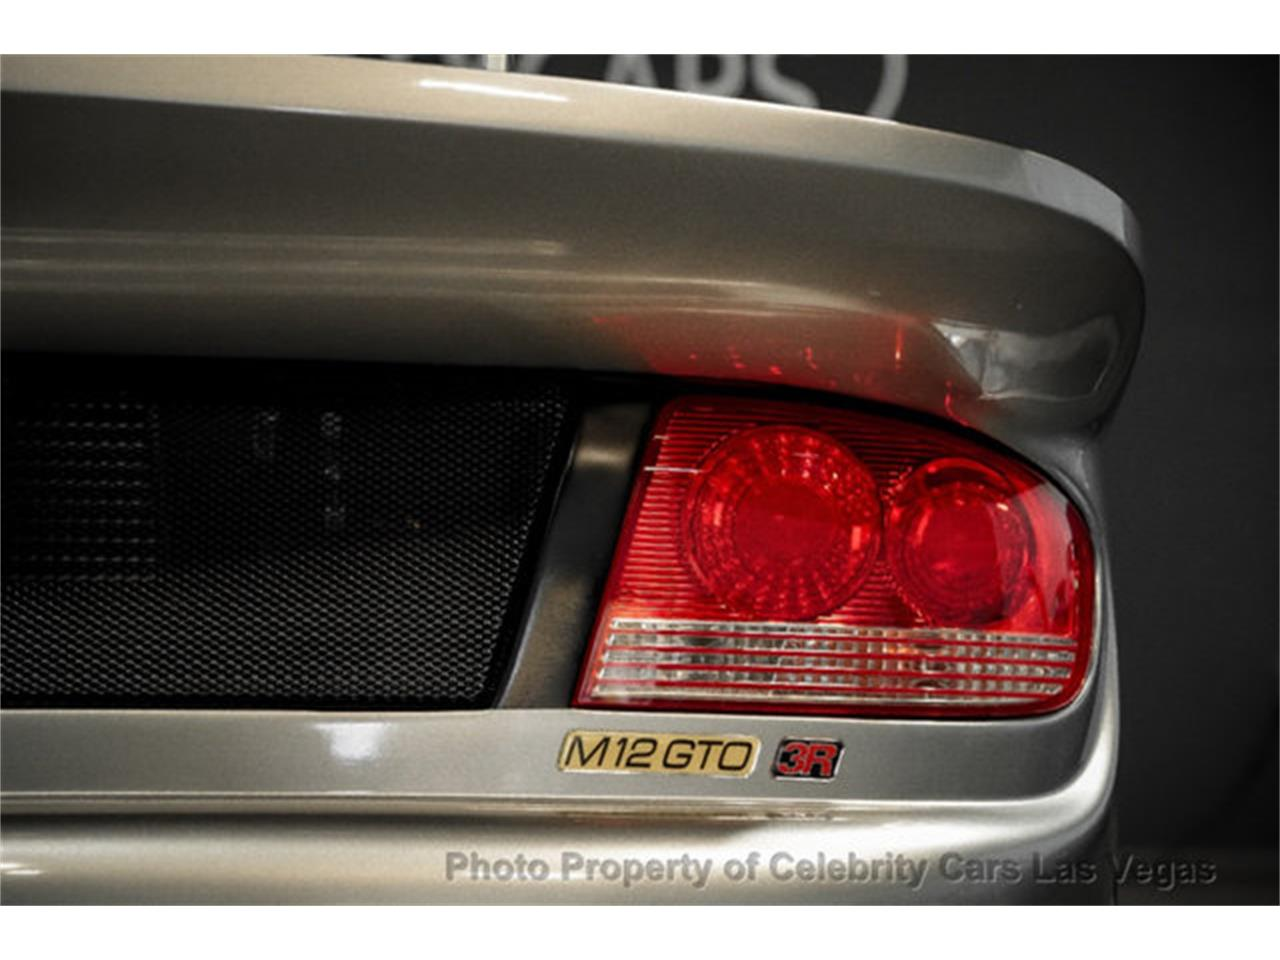 Large Picture of 2004 M12 GTO-3R located in Las Vegas Nevada Offered by Celebrity Cars Las Vegas - OY16